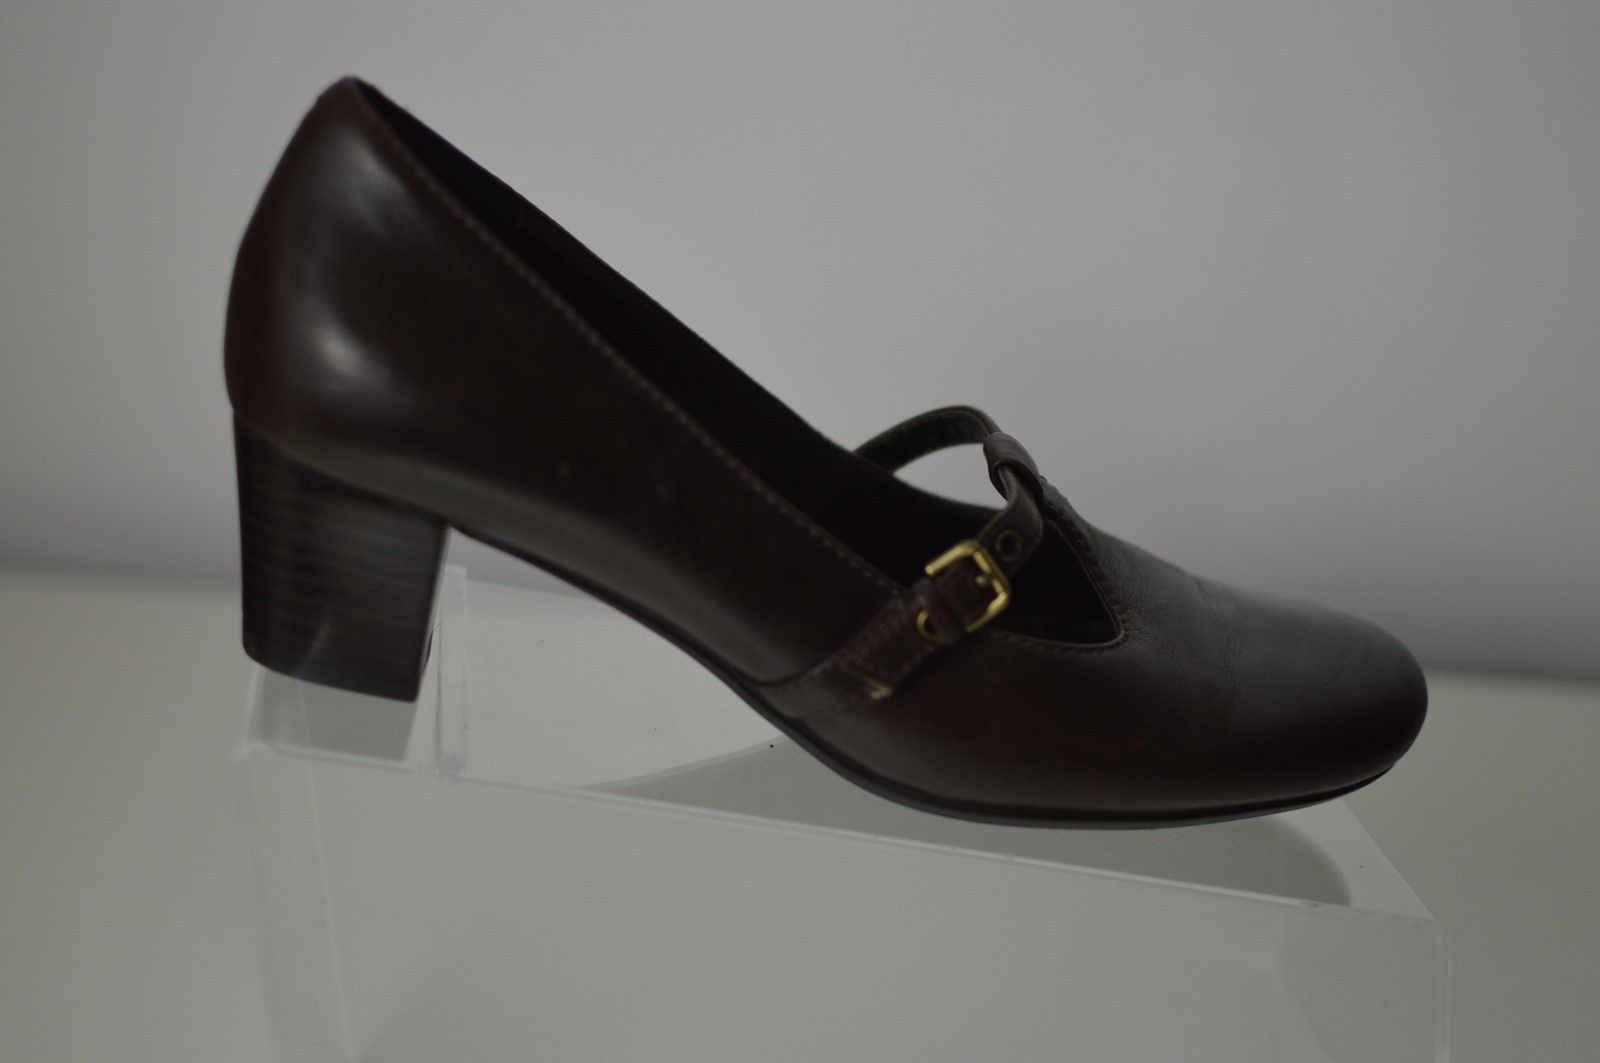 fff135bc Ecco T-STRAP Pumps Leather Brown Women's and 19 similar items